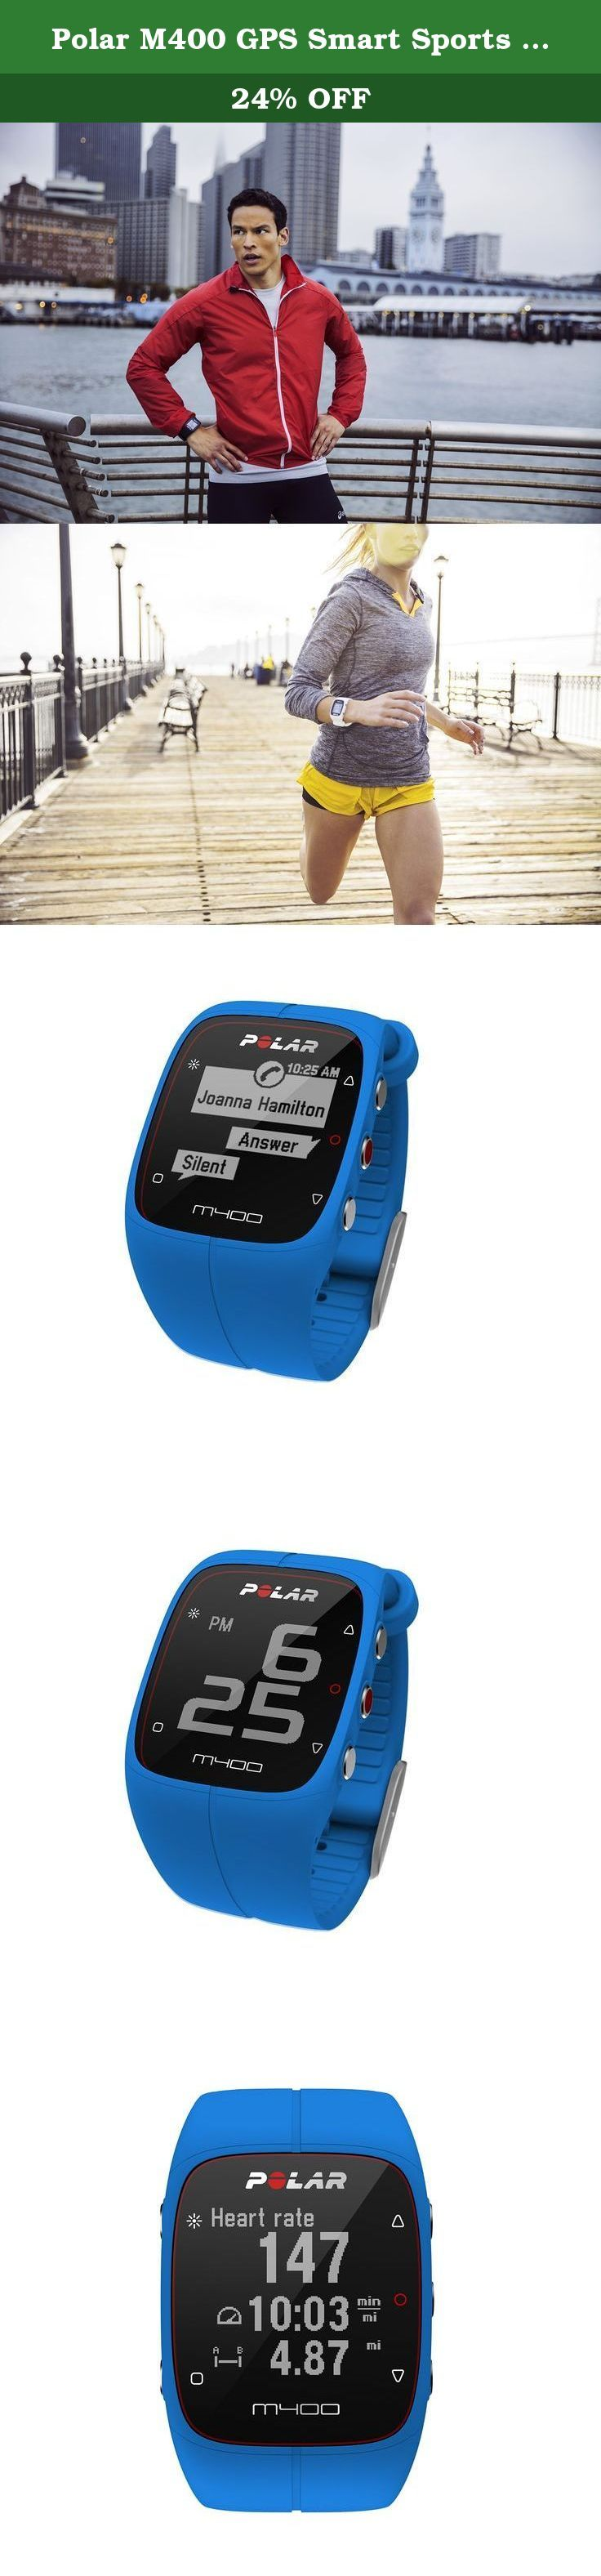 Polar M400 GPS Smart Sports Watch and Fitness Tracker (Blue). M400 is an exceptional blend of sporty design, integrated GPS and advanced training features. It takes the best of wearable activity trackers, integrates full GPS and advanced training features and provides you with meaningful data that helps you make improvements in your lifestyle and training PROGRAM. Lightweight and compact, M400 is designed to be worn all day. With its high-contrast and High-Resolution display, M400 is the...